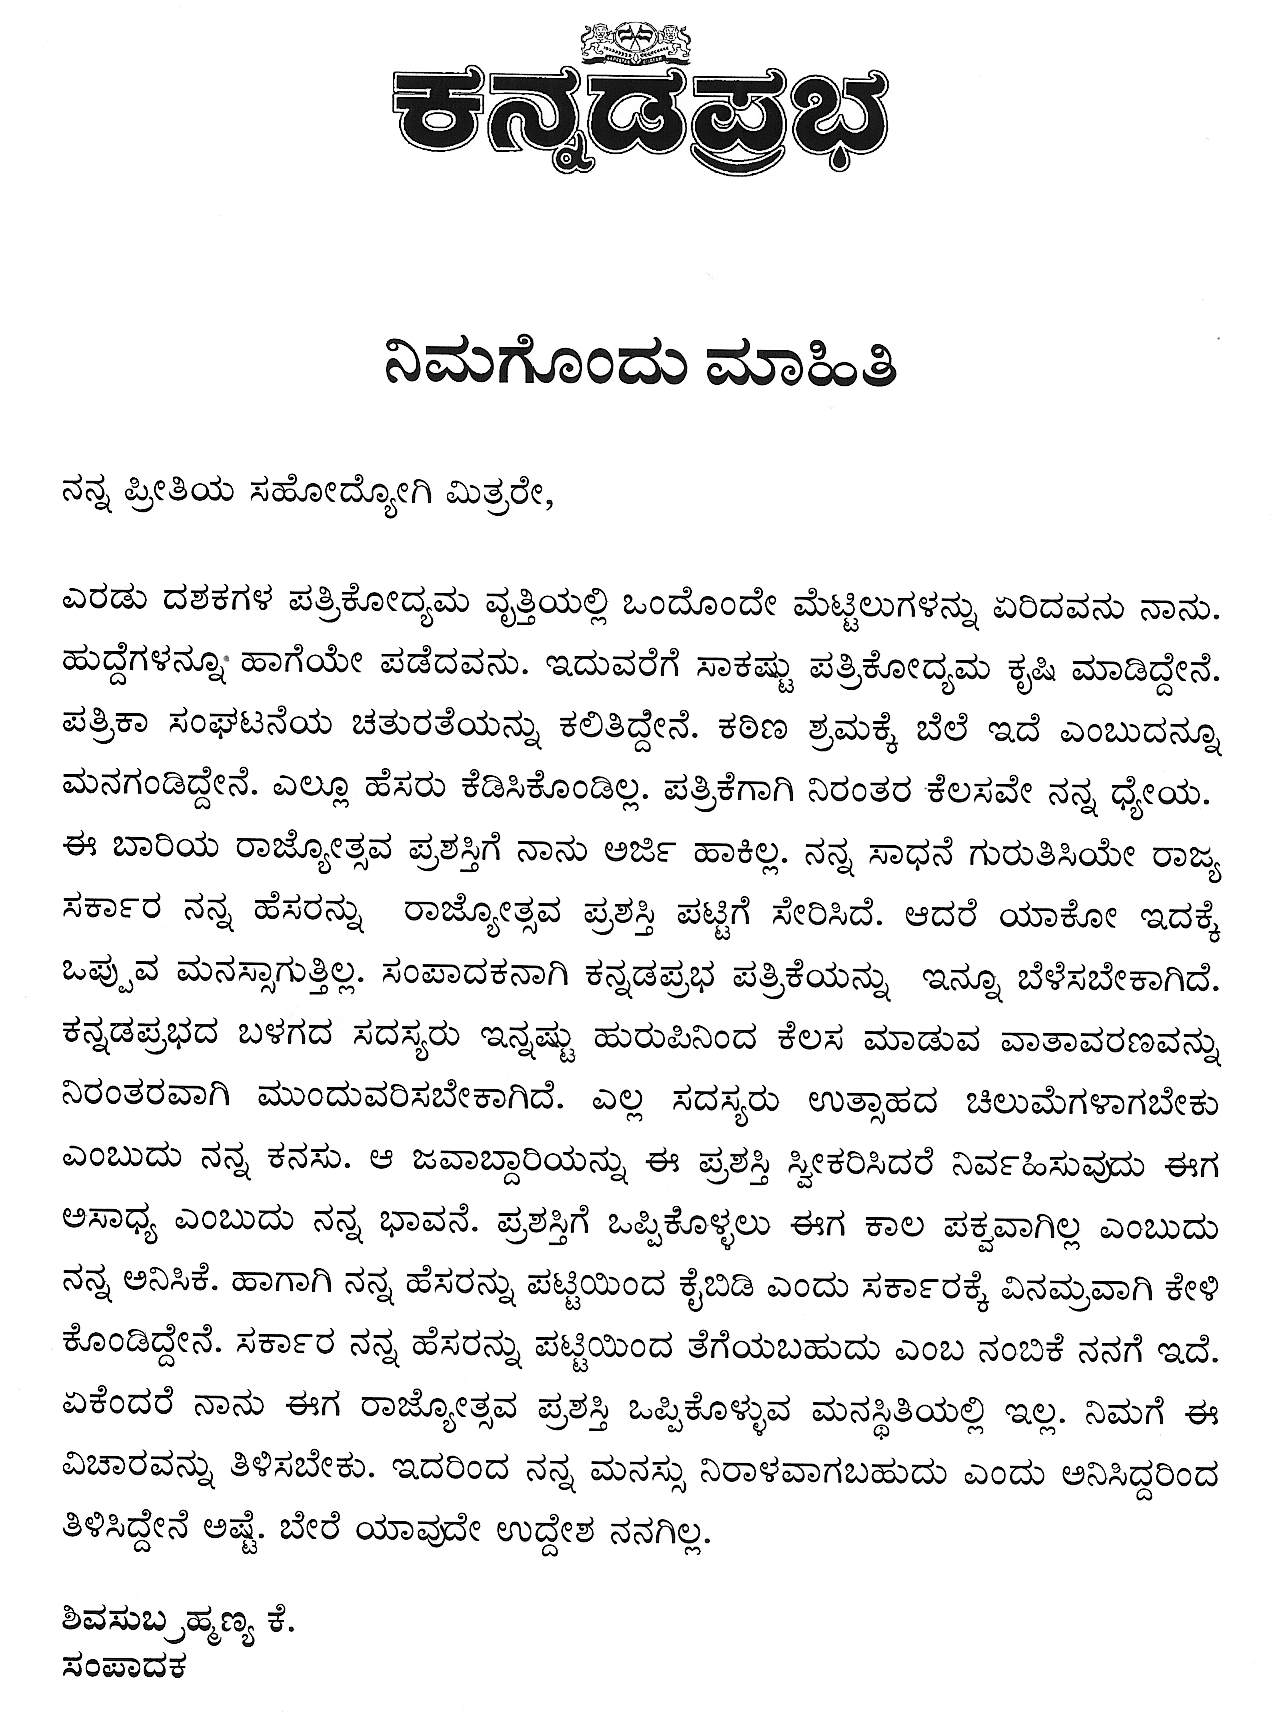 essay about nature in kannada In case you're missing the forest for the trees, here are a few reminders why woodlands are wonderful.